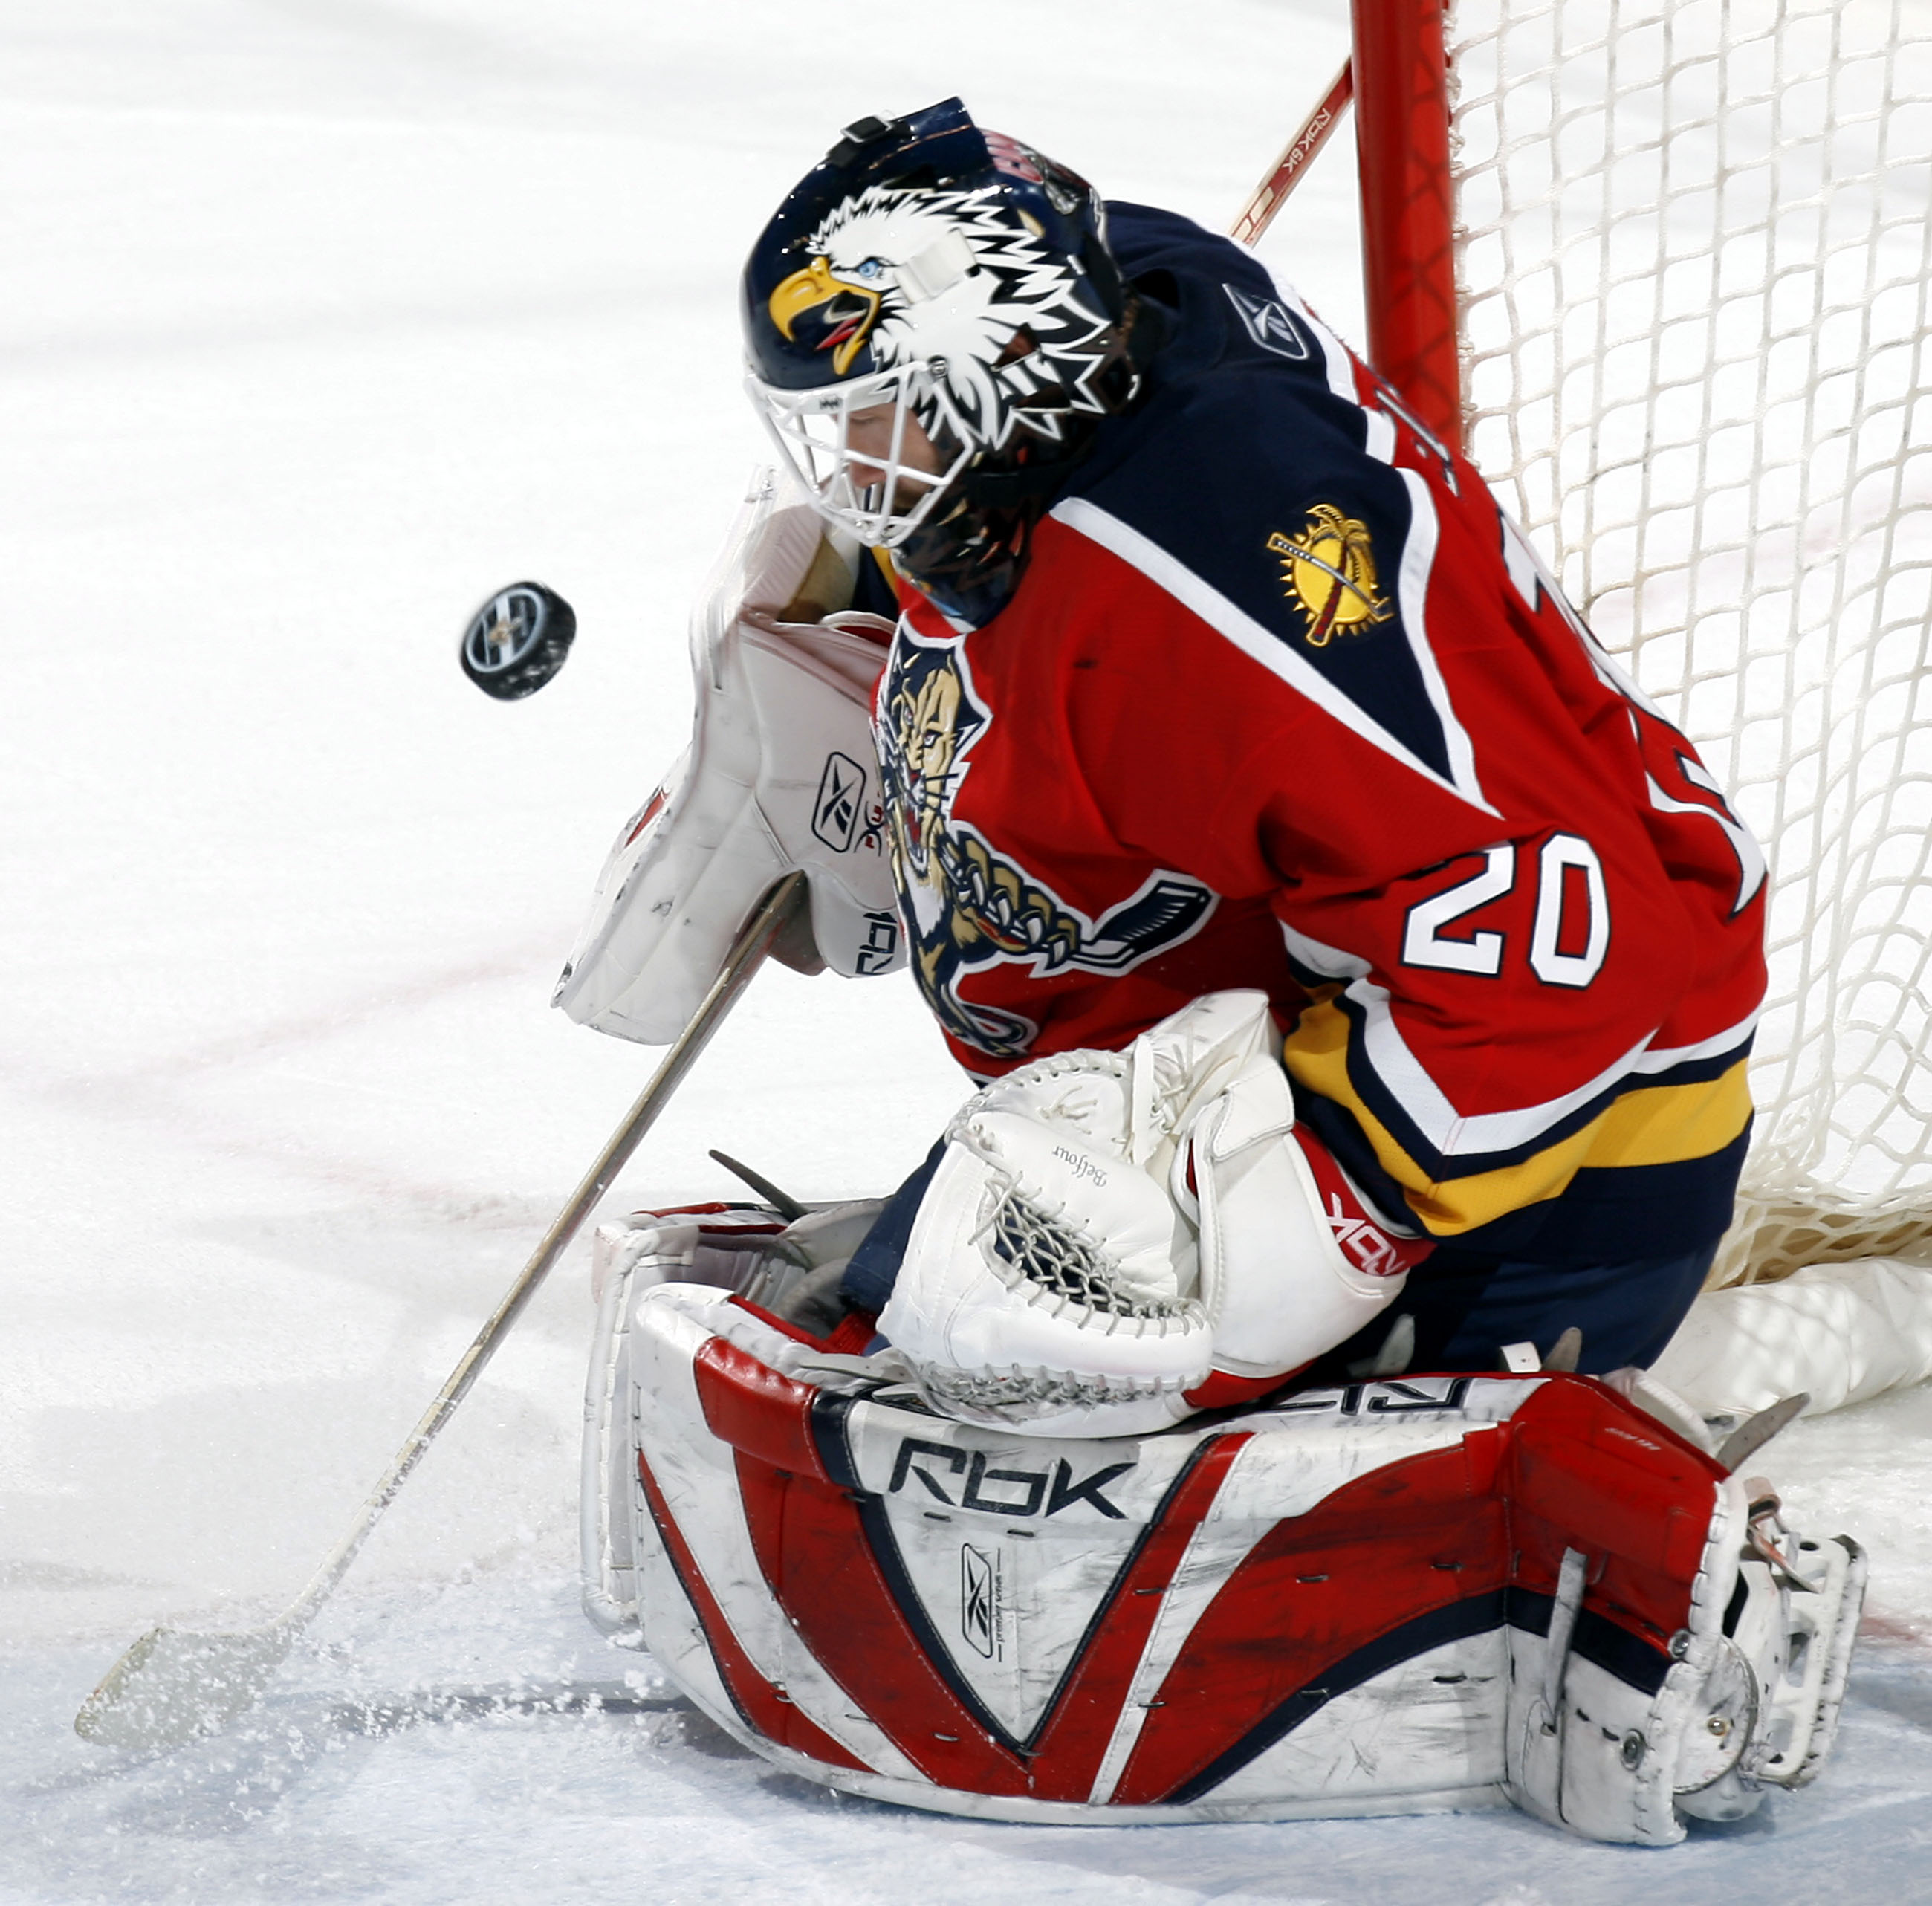 SUNRISE, FL - APRIL 1: Goaltender Ed Belfour #20 of the Florida Panthers makes a save against the Carolina Hurricanes in the second period at the Bank Atlantic Center on April 1, 2007 in Sunrise, Florida. (Photo by Eliot J. Schechter/Getty Images)